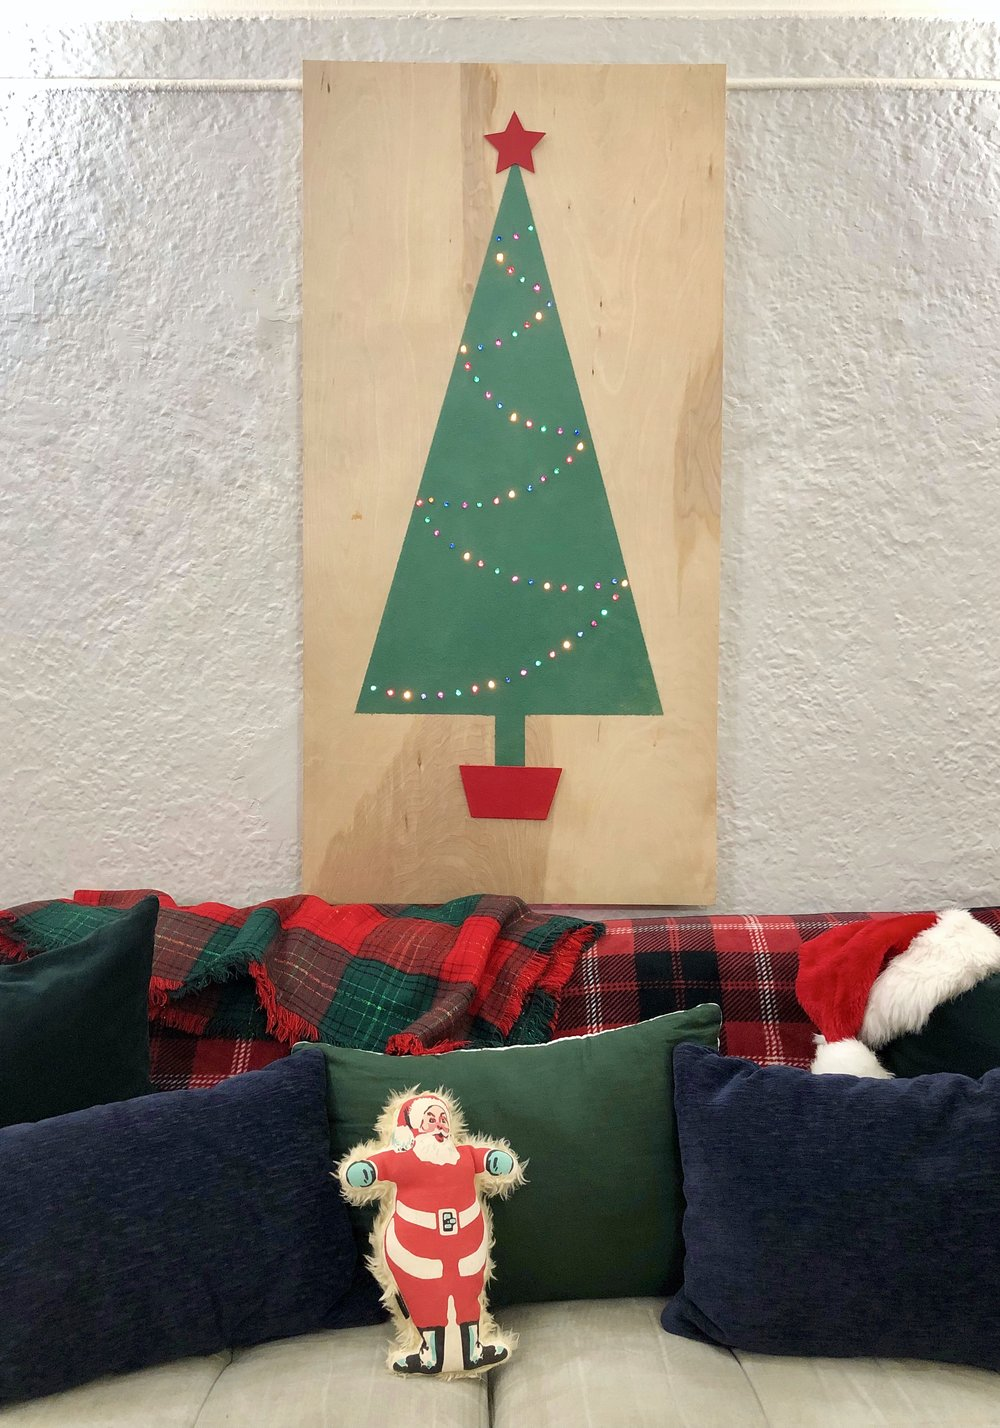 Retro inspired flocked Christmas tree on a piece of plywood. Great for decorating small spaces